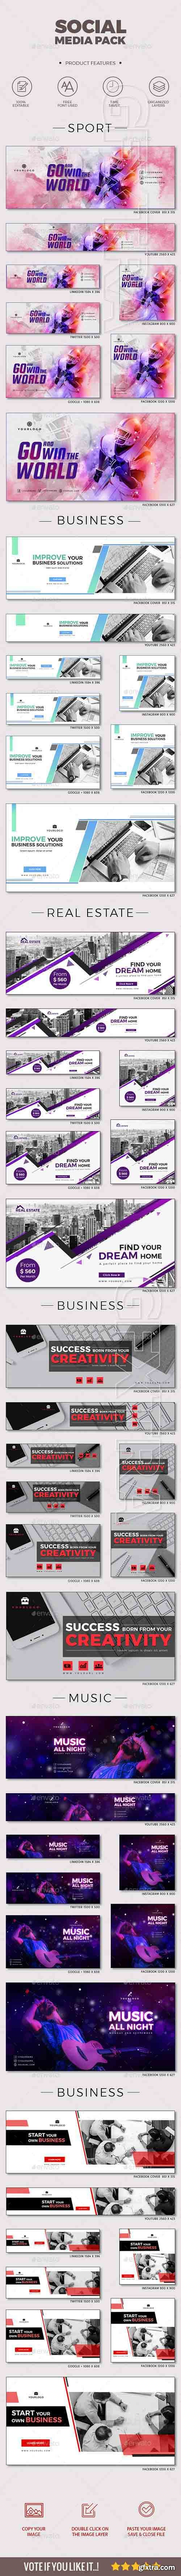 GraphicRiver - 48 Social Media Cover Kit 20834390